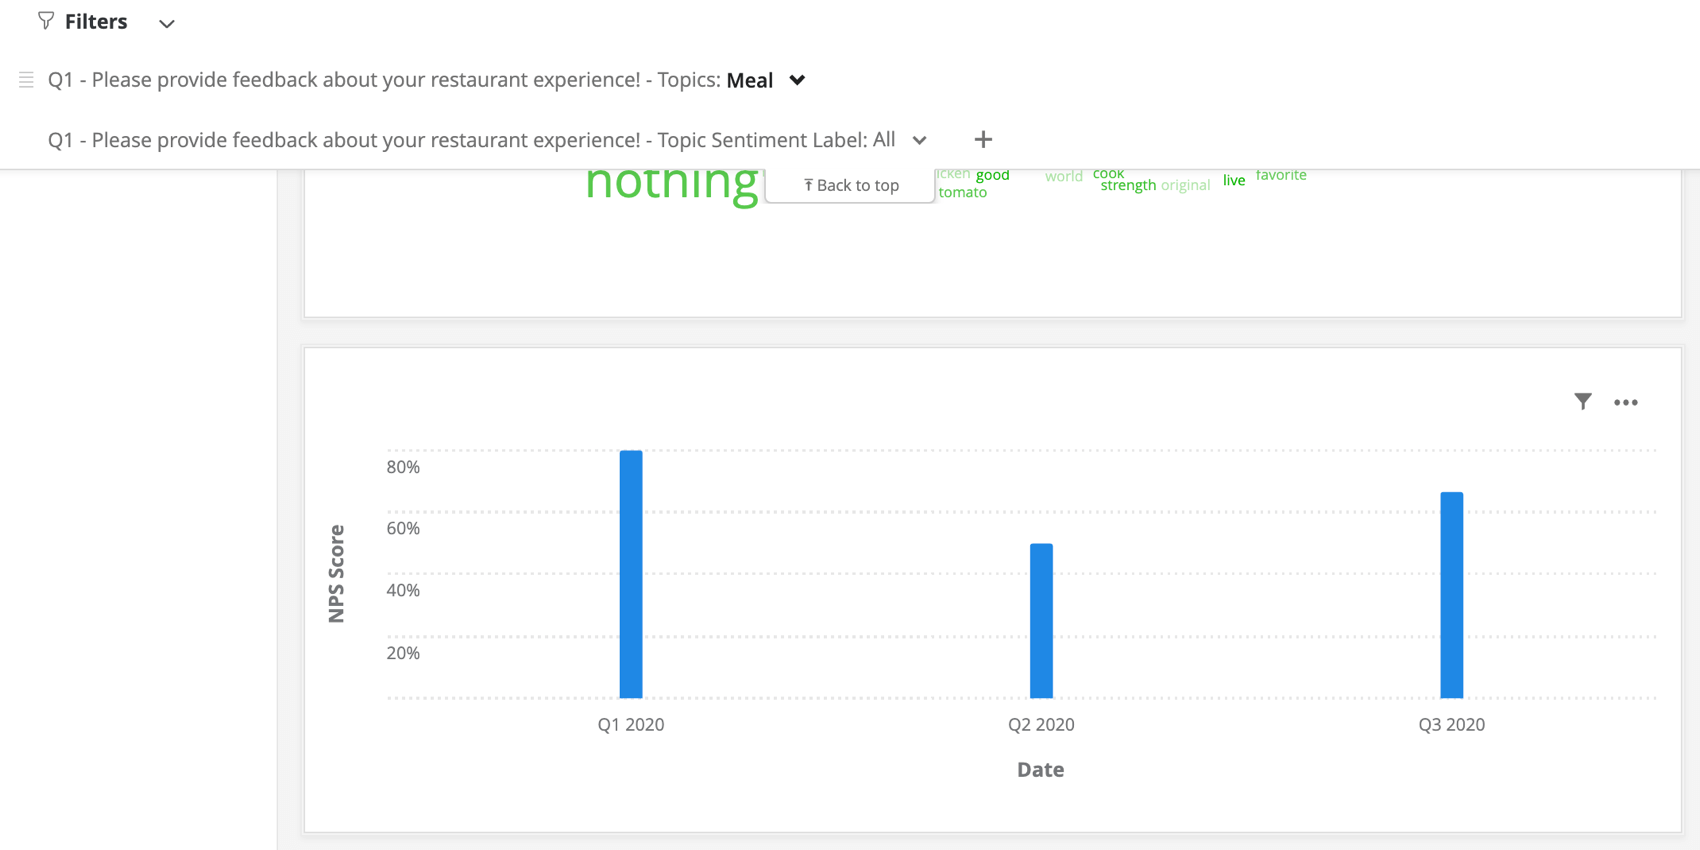 a simple chart showing how topic sentiment affects nps over time